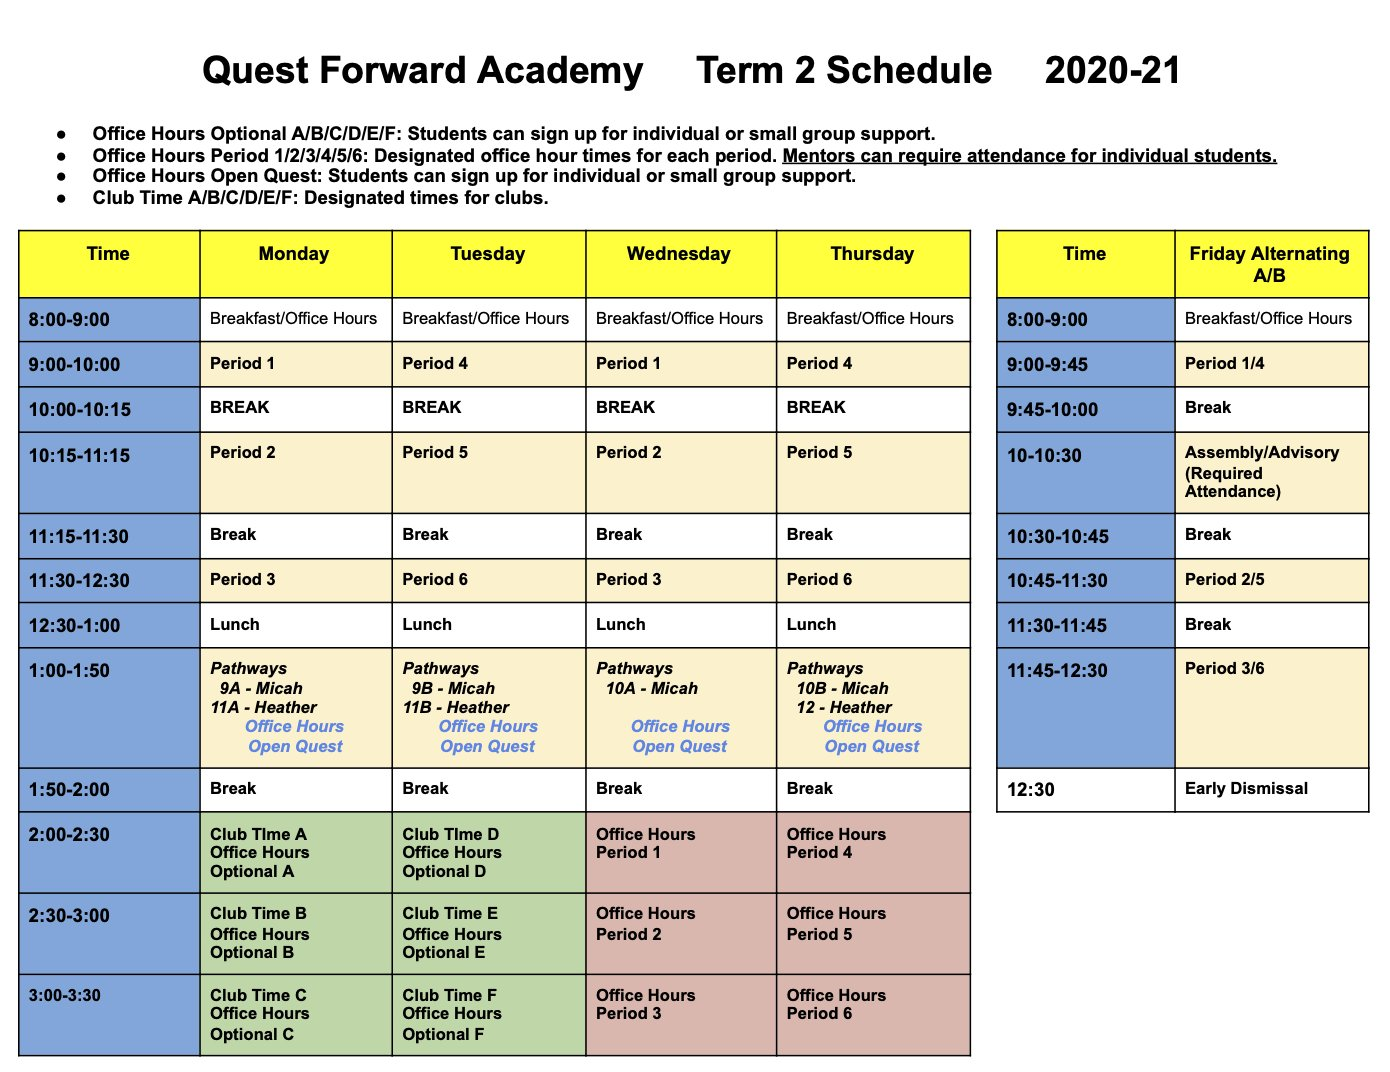 The Term 2 schedule for Quest Forward Academy Santa Rosa.